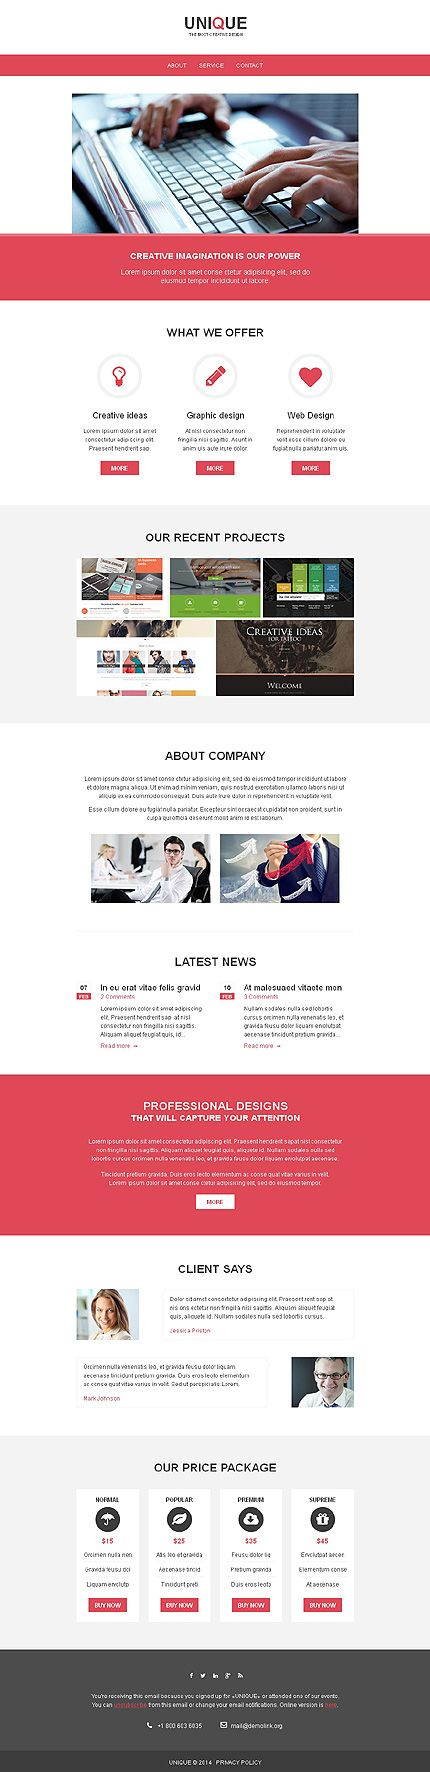 55 best Newsletter Templates images on Pinterest Mobile app - email newsletter template